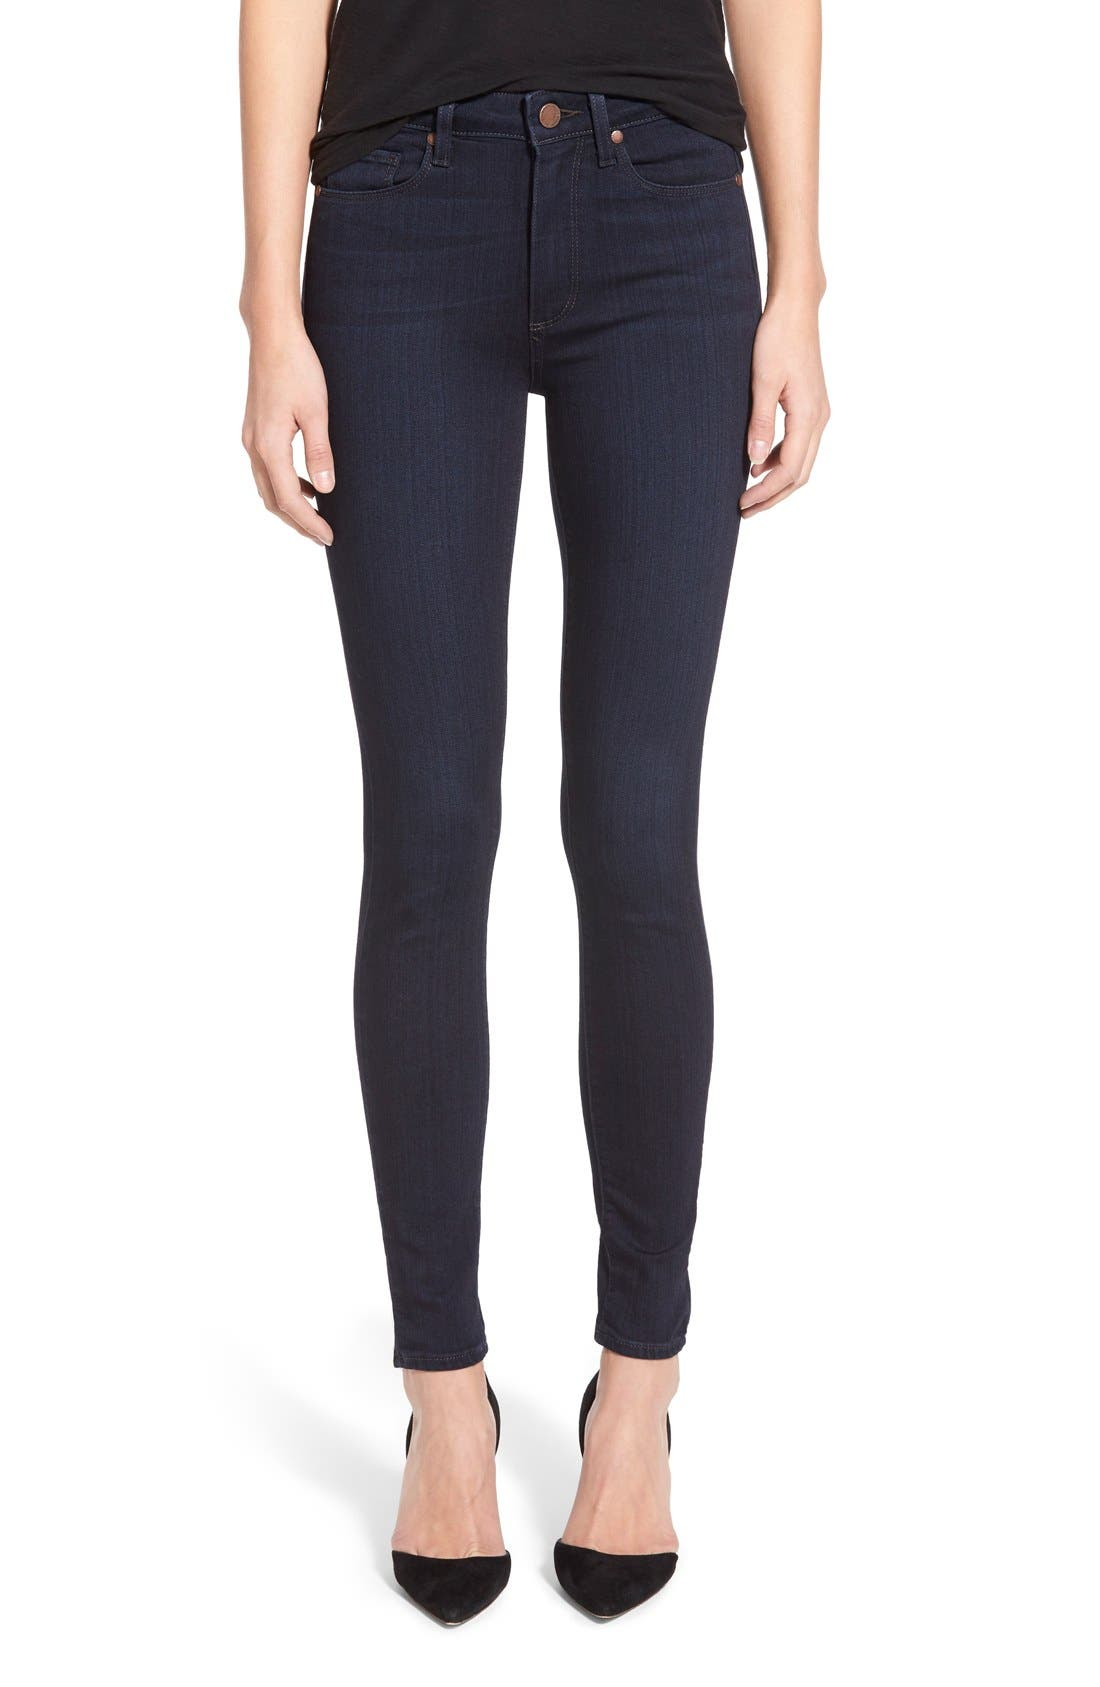 Main Image - Paige Denim 'Hoxton' High Rise Ultra Skinny Jeans (Cambria)